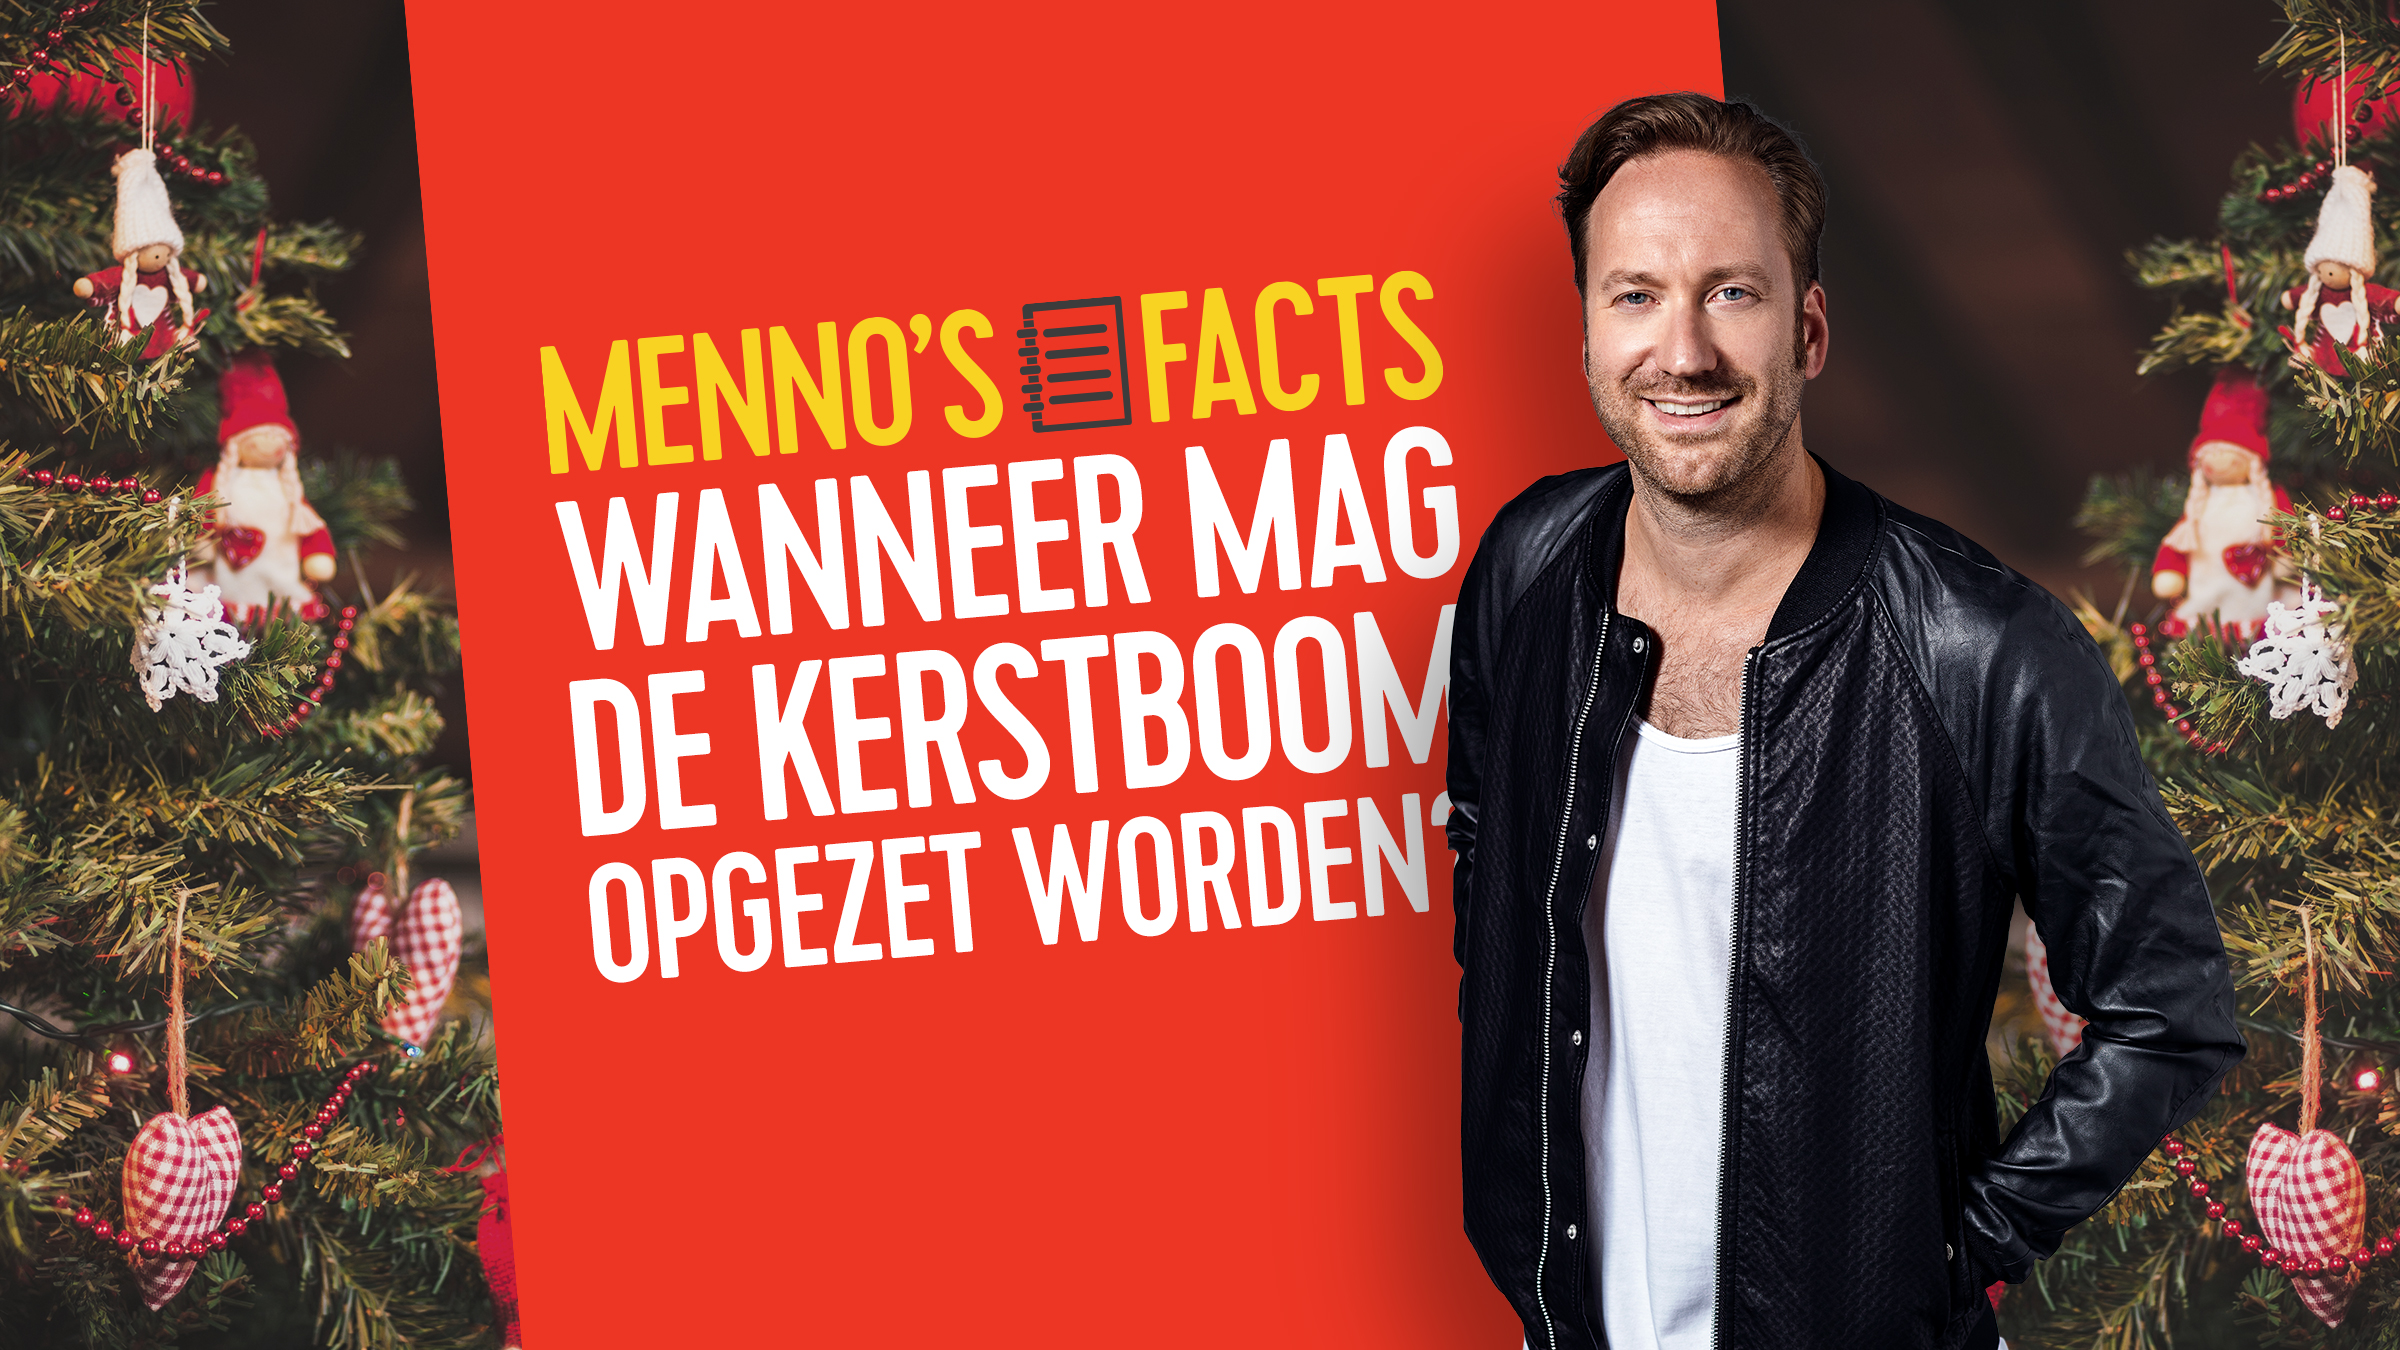 Kerstboom teaser basis mennosfacts17